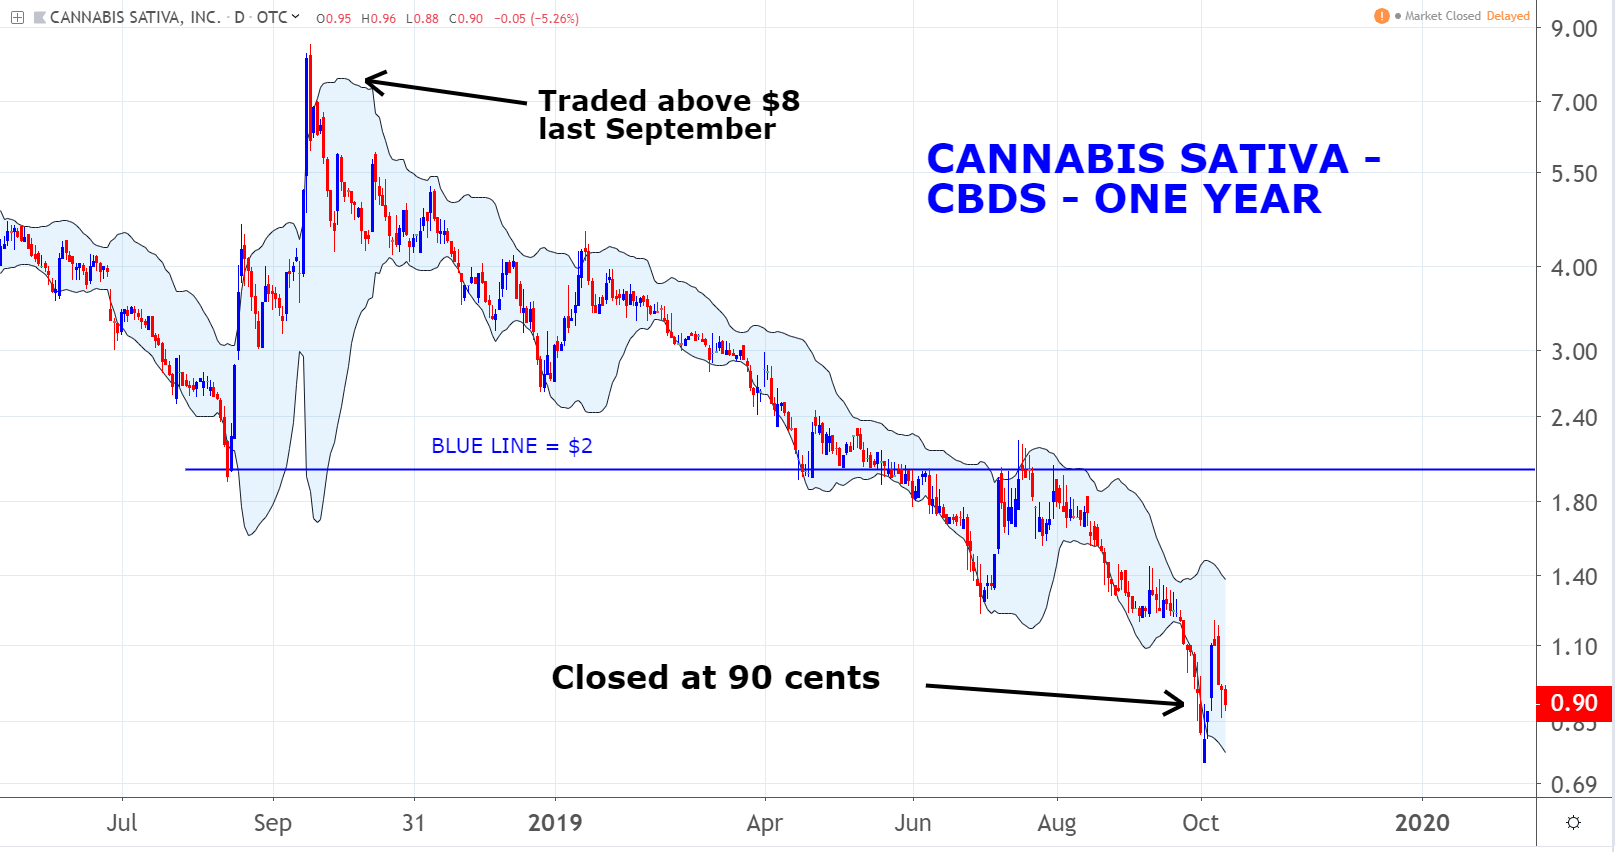 Marijuana Penny Stocks to Consider: Cannabis Sativa, Inc. (CBDS)